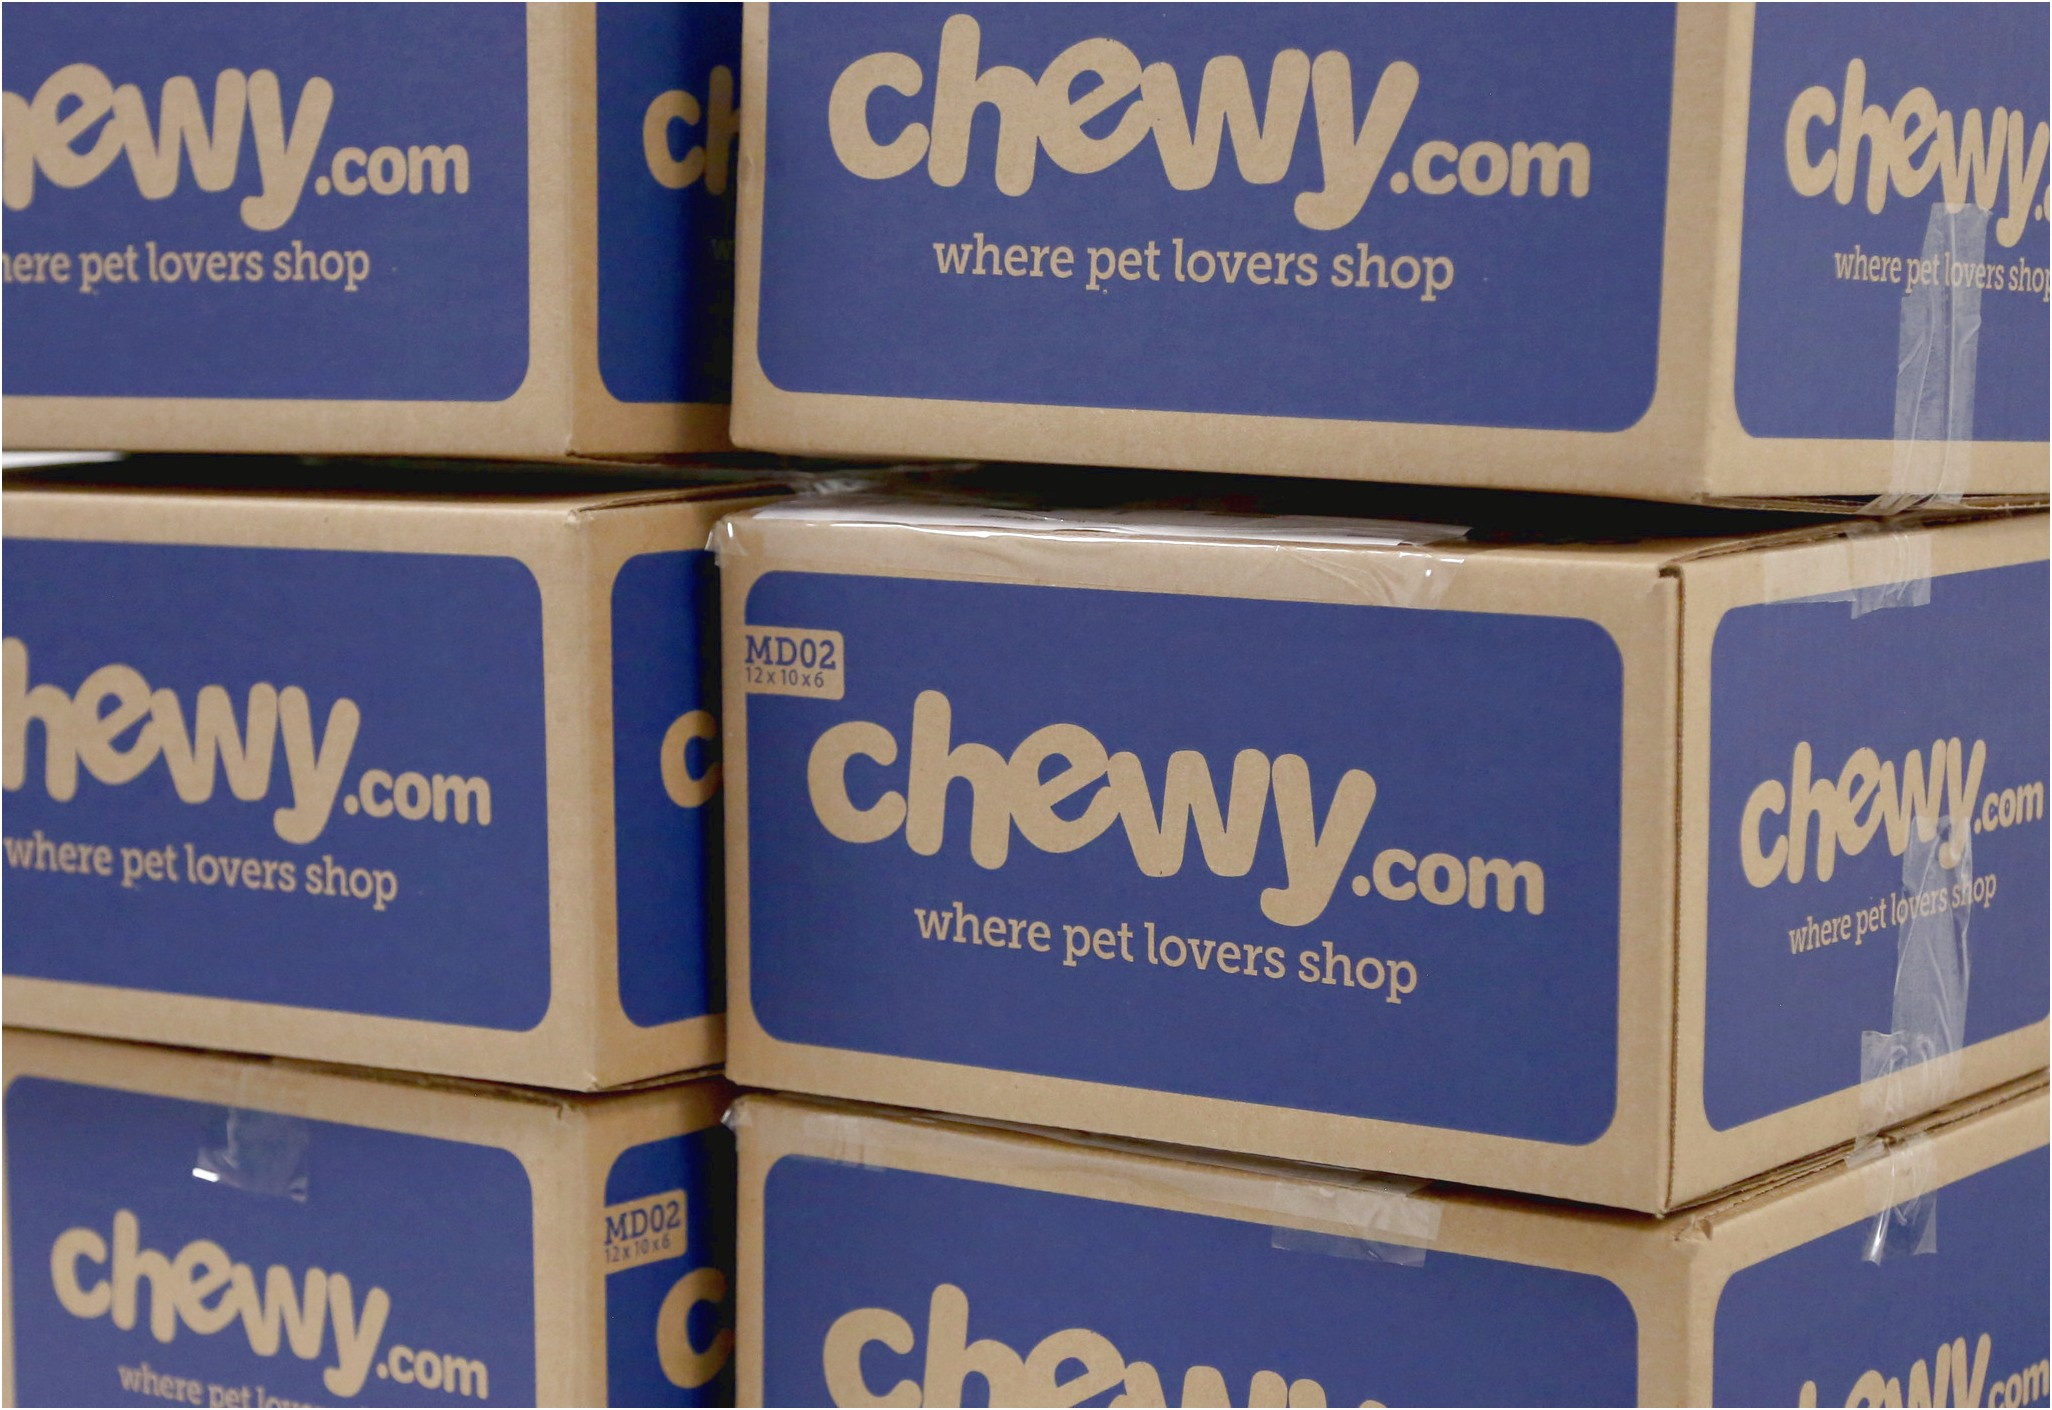 Chewy Dog Food Brands